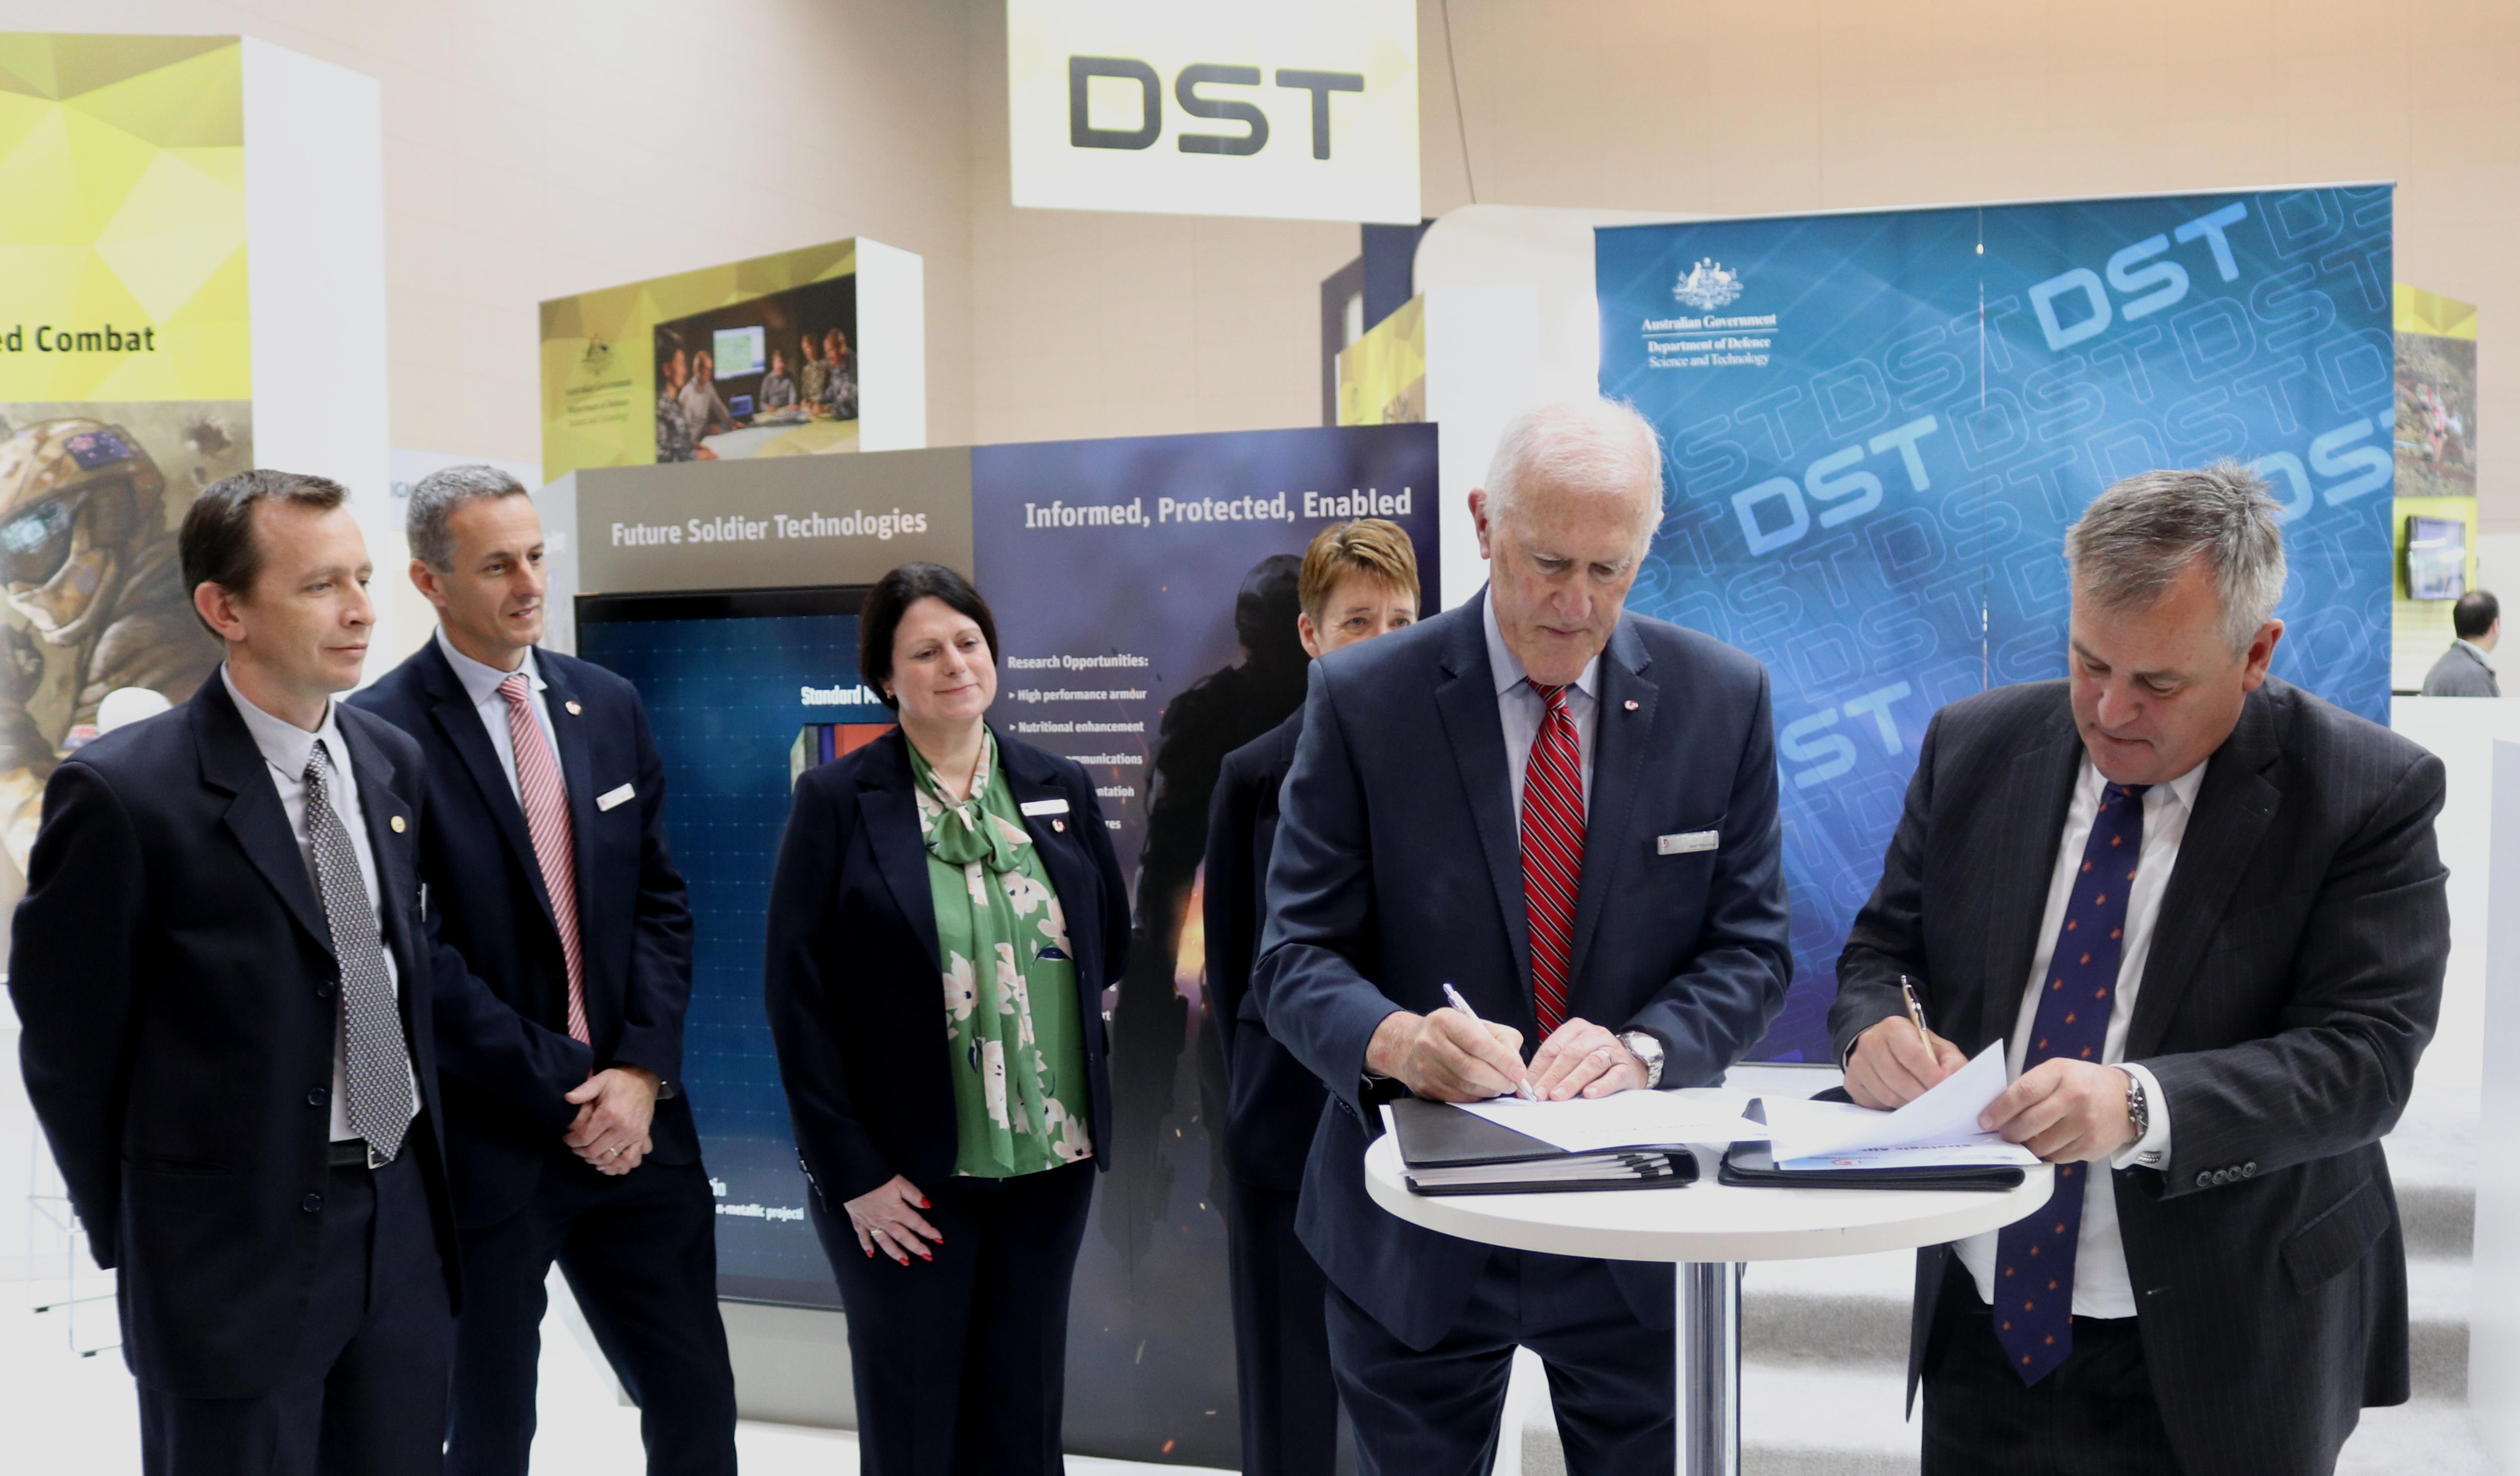 L3 and DST sign strategic alliance at Land Forces 2018